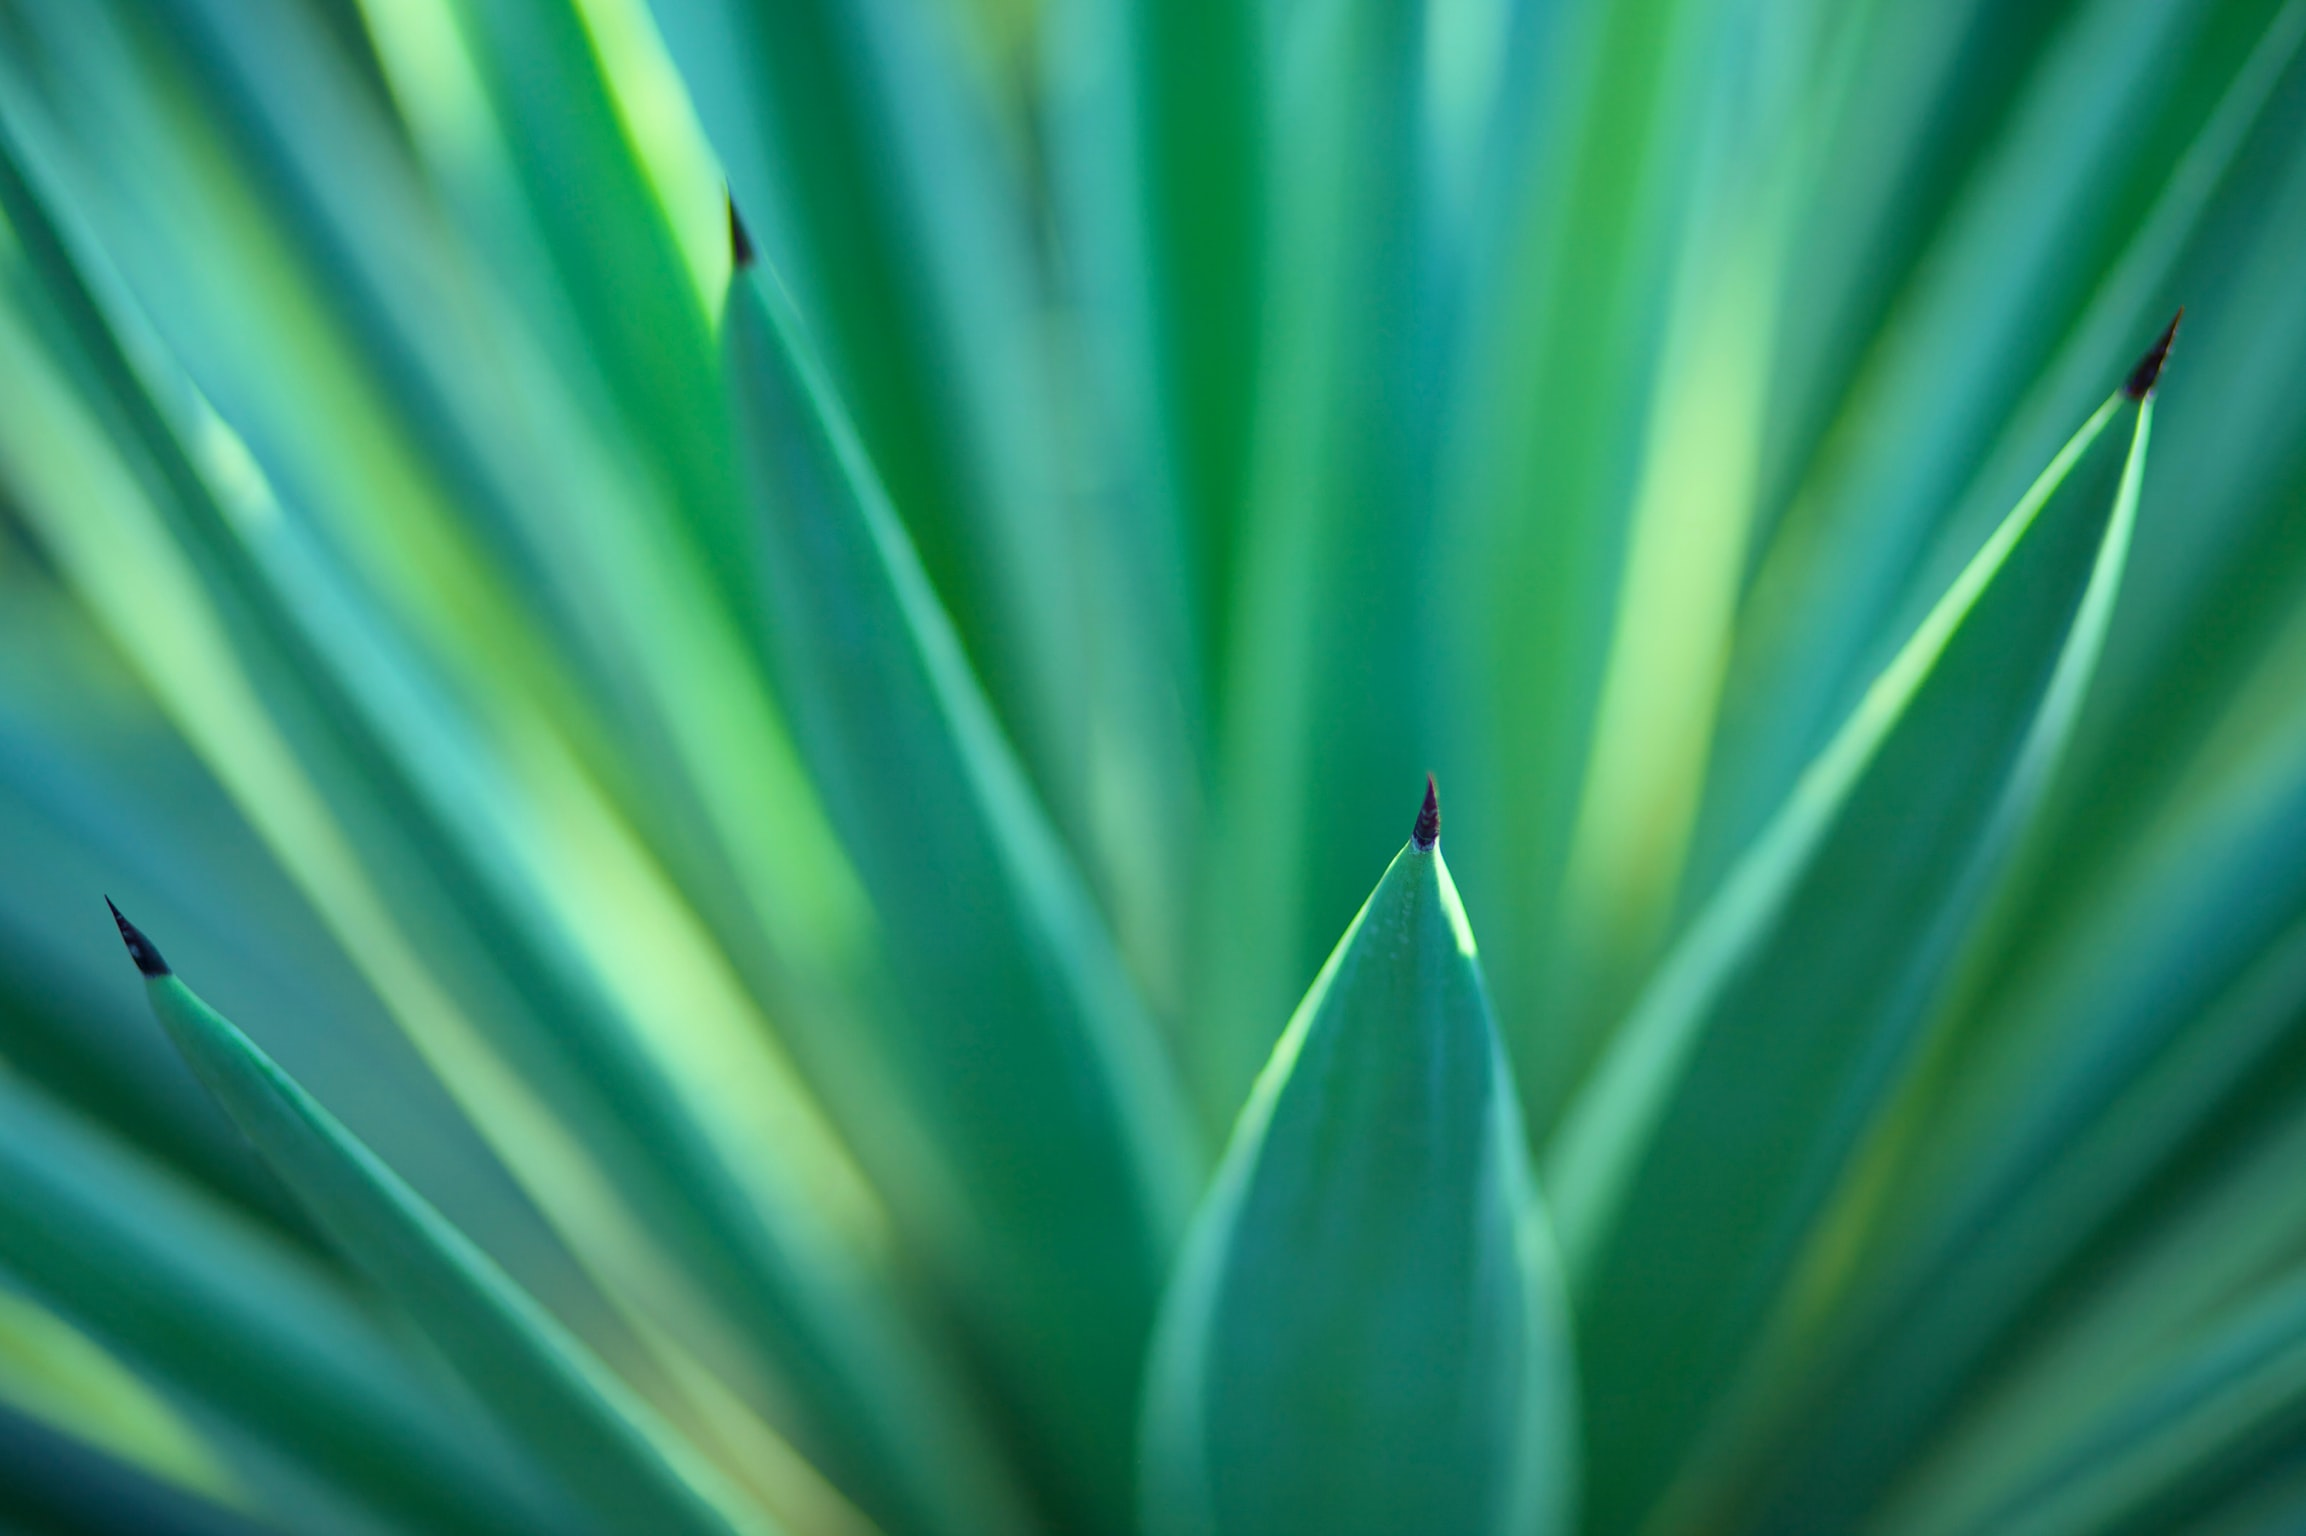 A macro shot of sharp green flax leaves shooting upwards